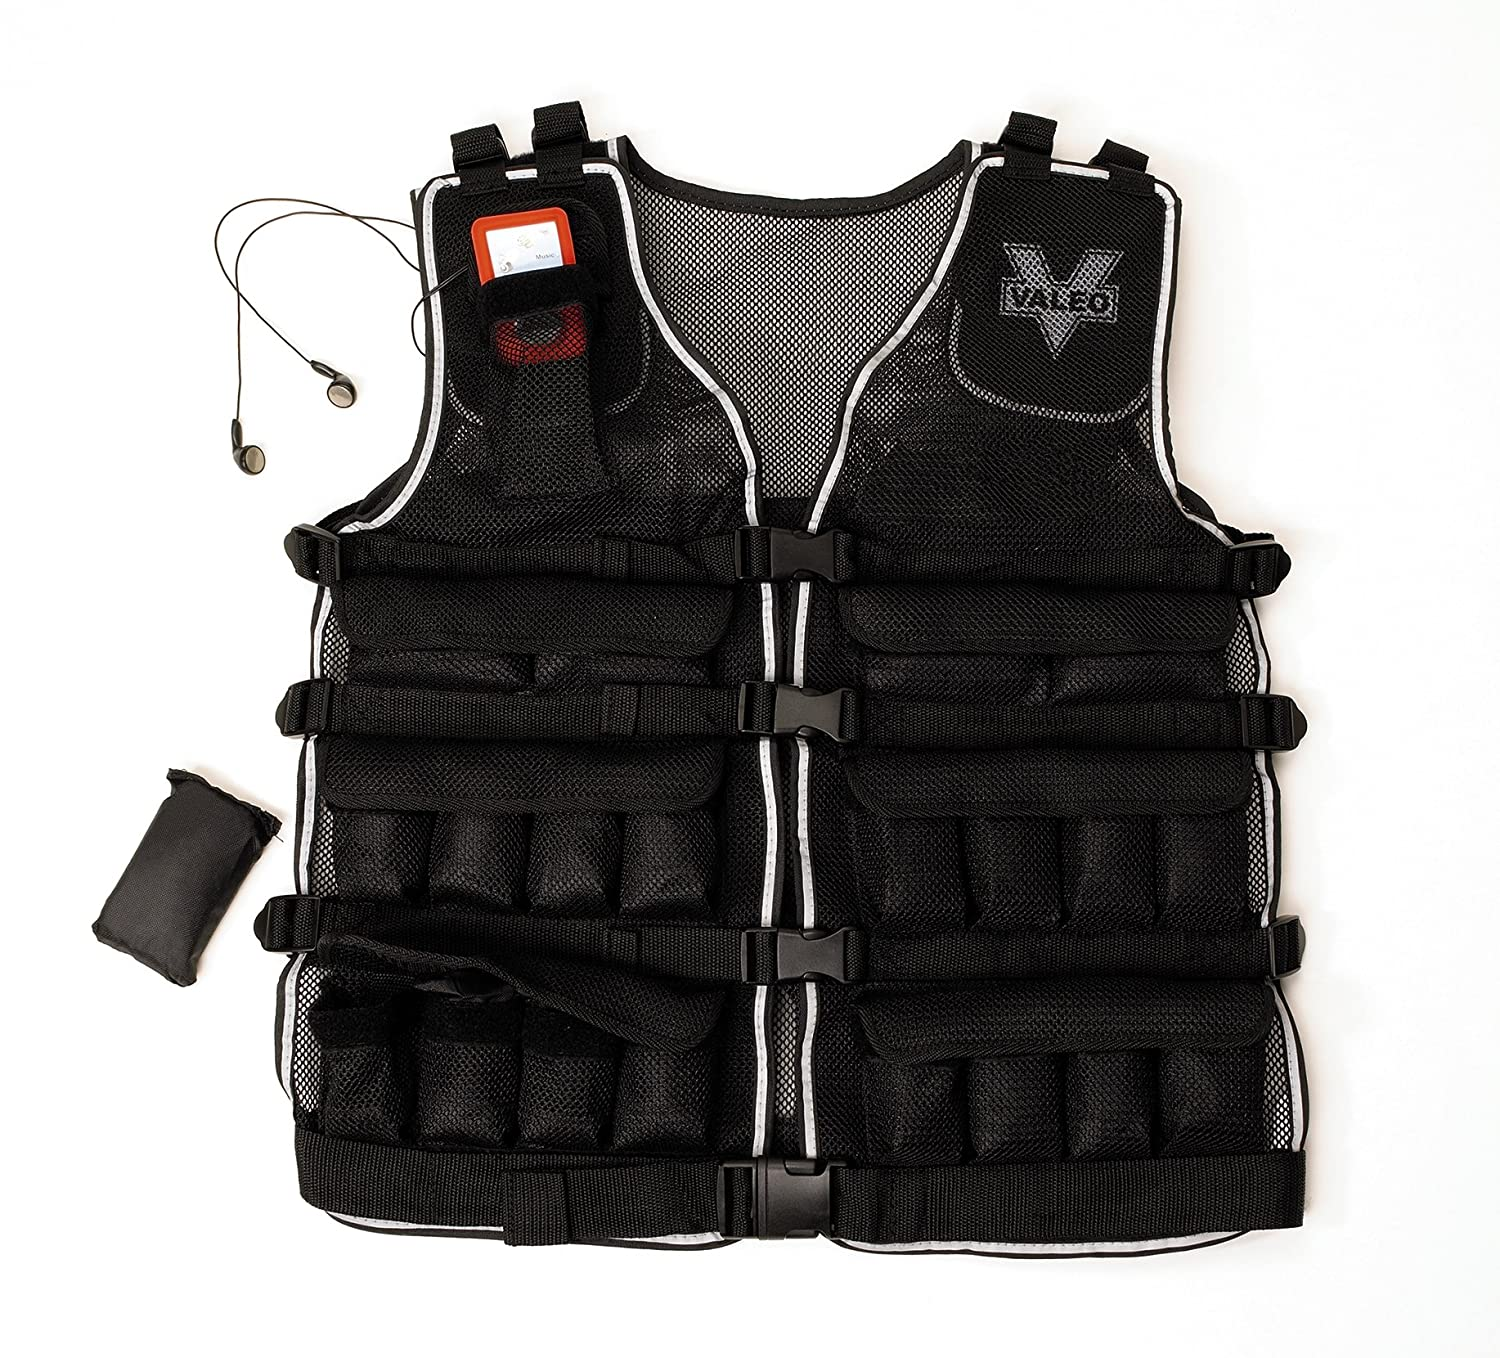 Amazon Valeo 20 Pound Weighted Vest With Removable 1 Pound